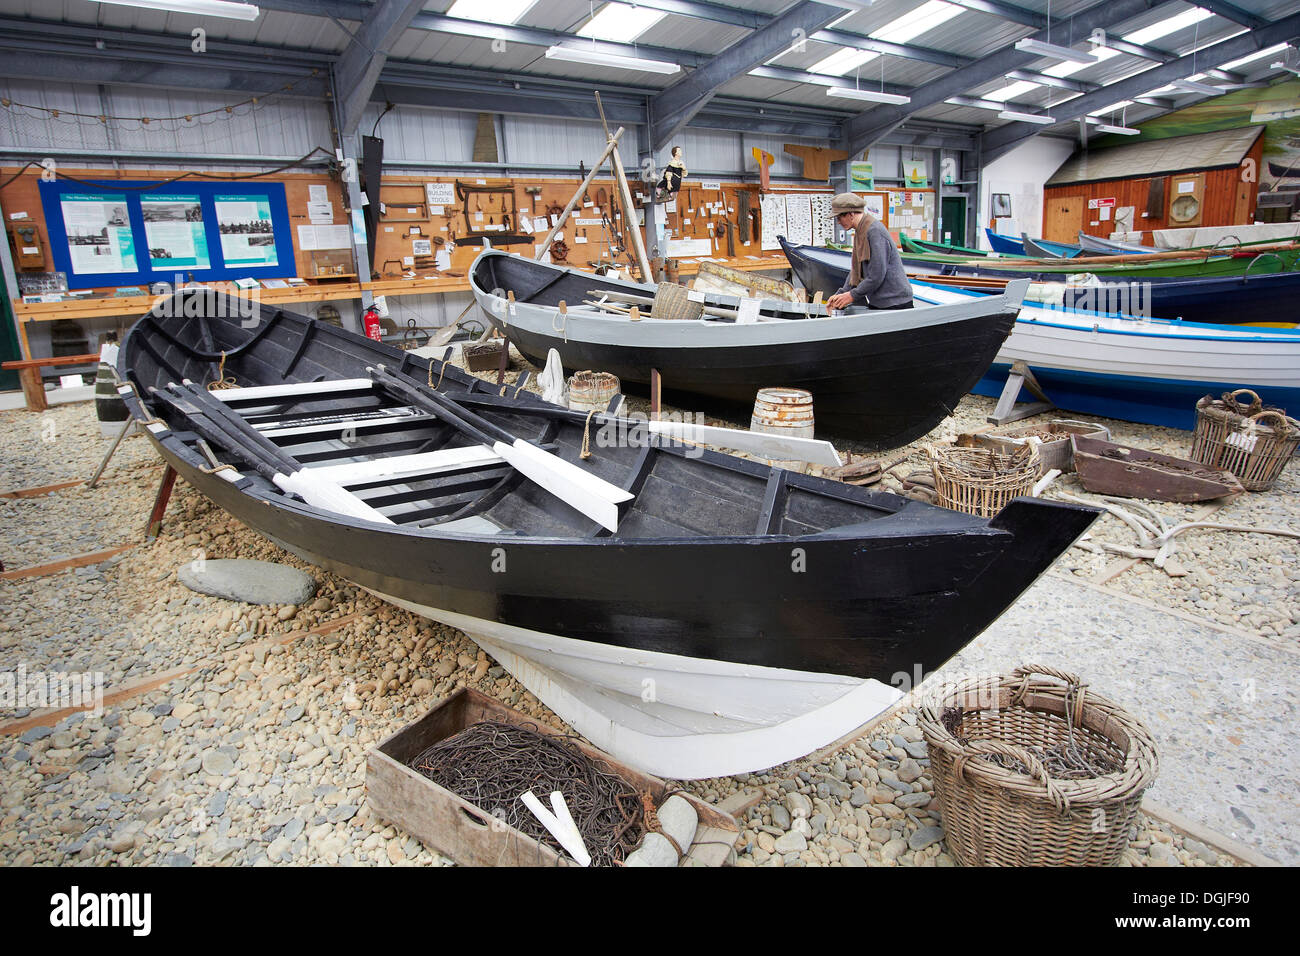 Unst heritage boat museum. - Stock Image